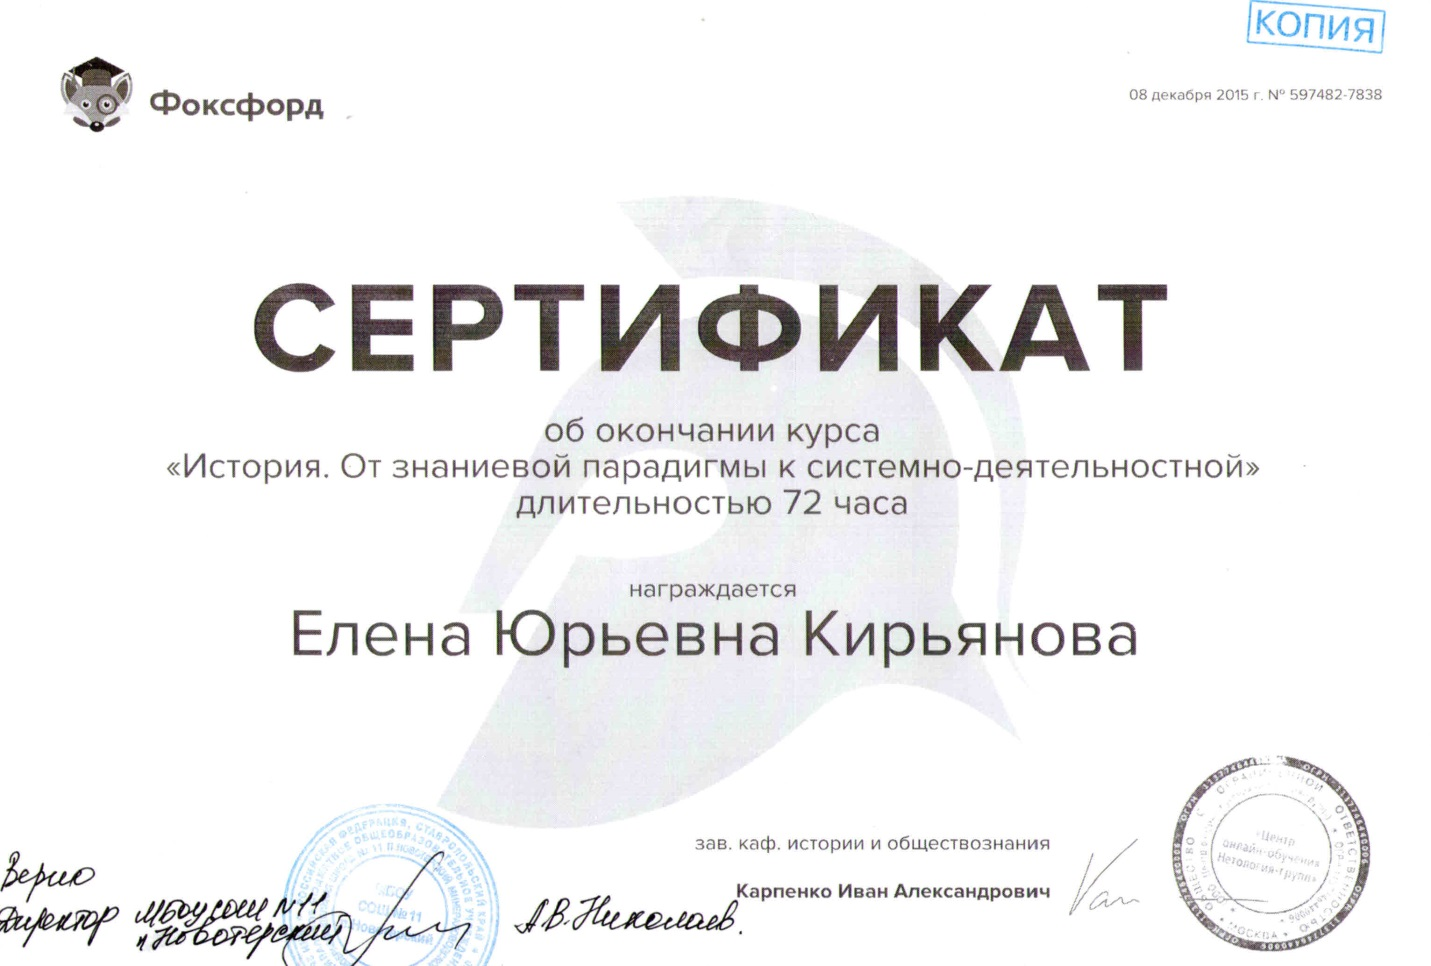 C:\Users\Сергей\Desktop\Document_6.jpg